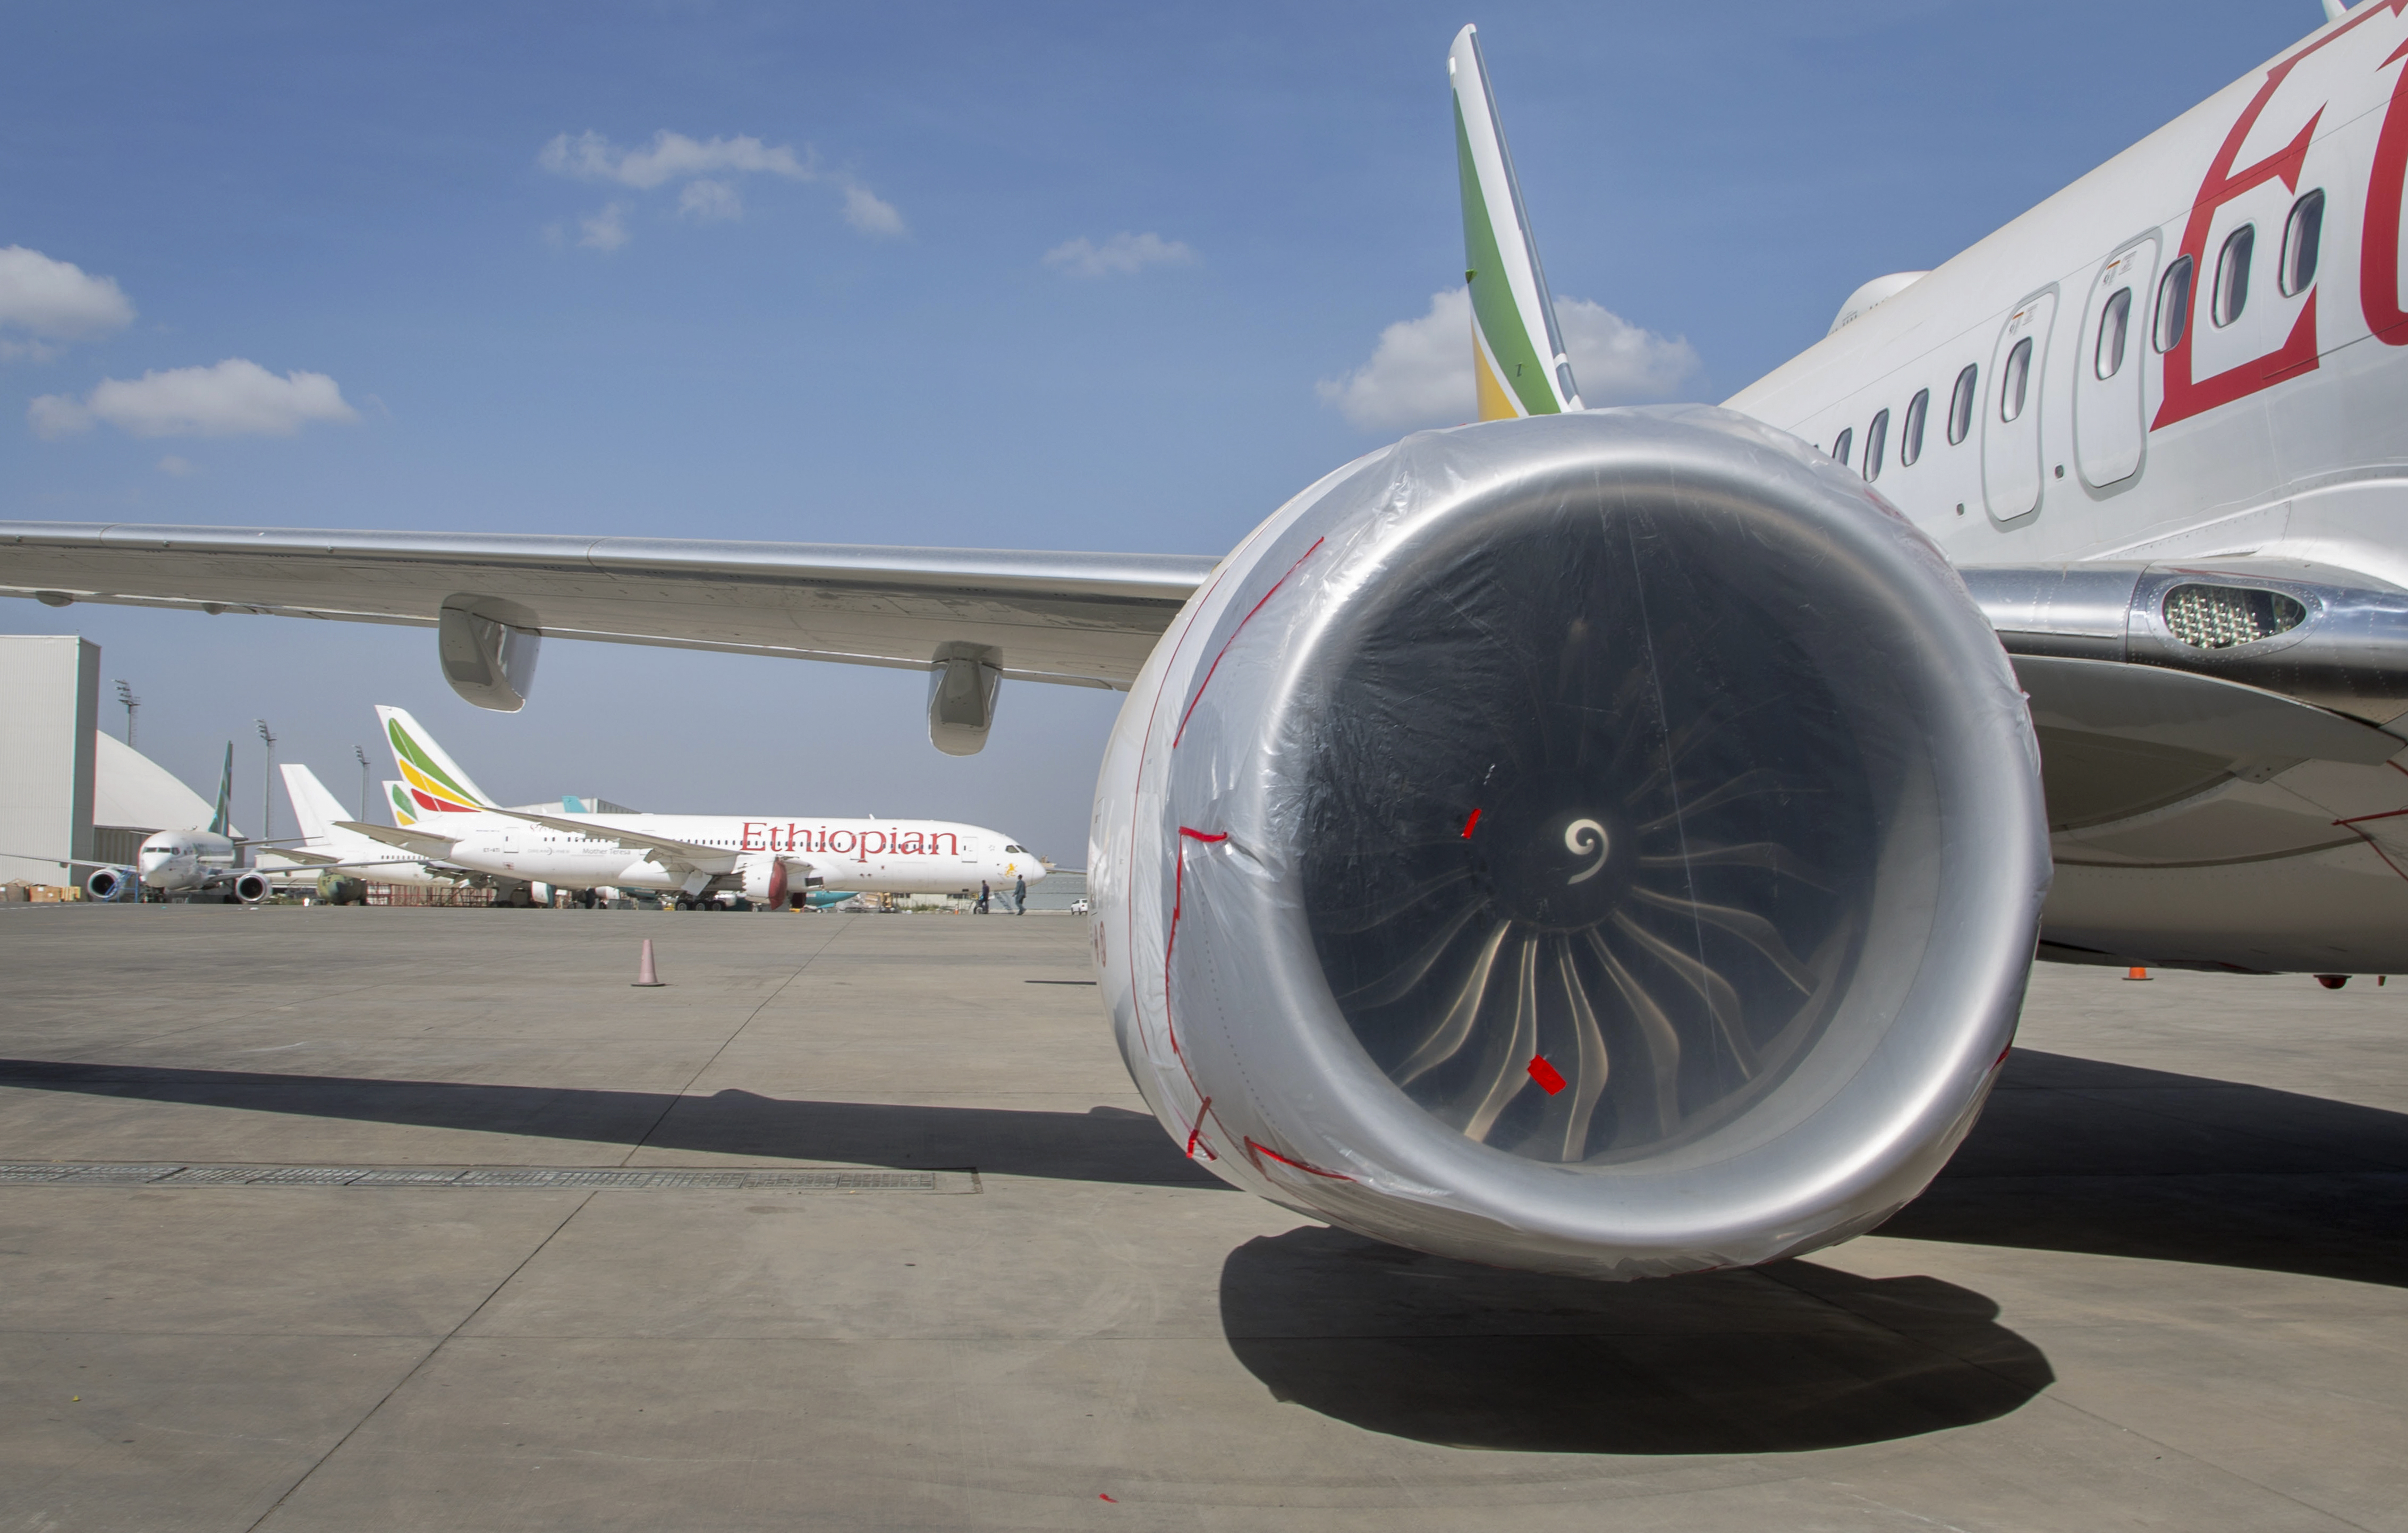 Other Ethiopian Airlines aircraft are seen in the distance behind an Ethiopian Airlines Boeing 737 Max 8 as it sits grounded at Bole International Airport in Addis Ababa, Ethiopia, March 23, 2019.